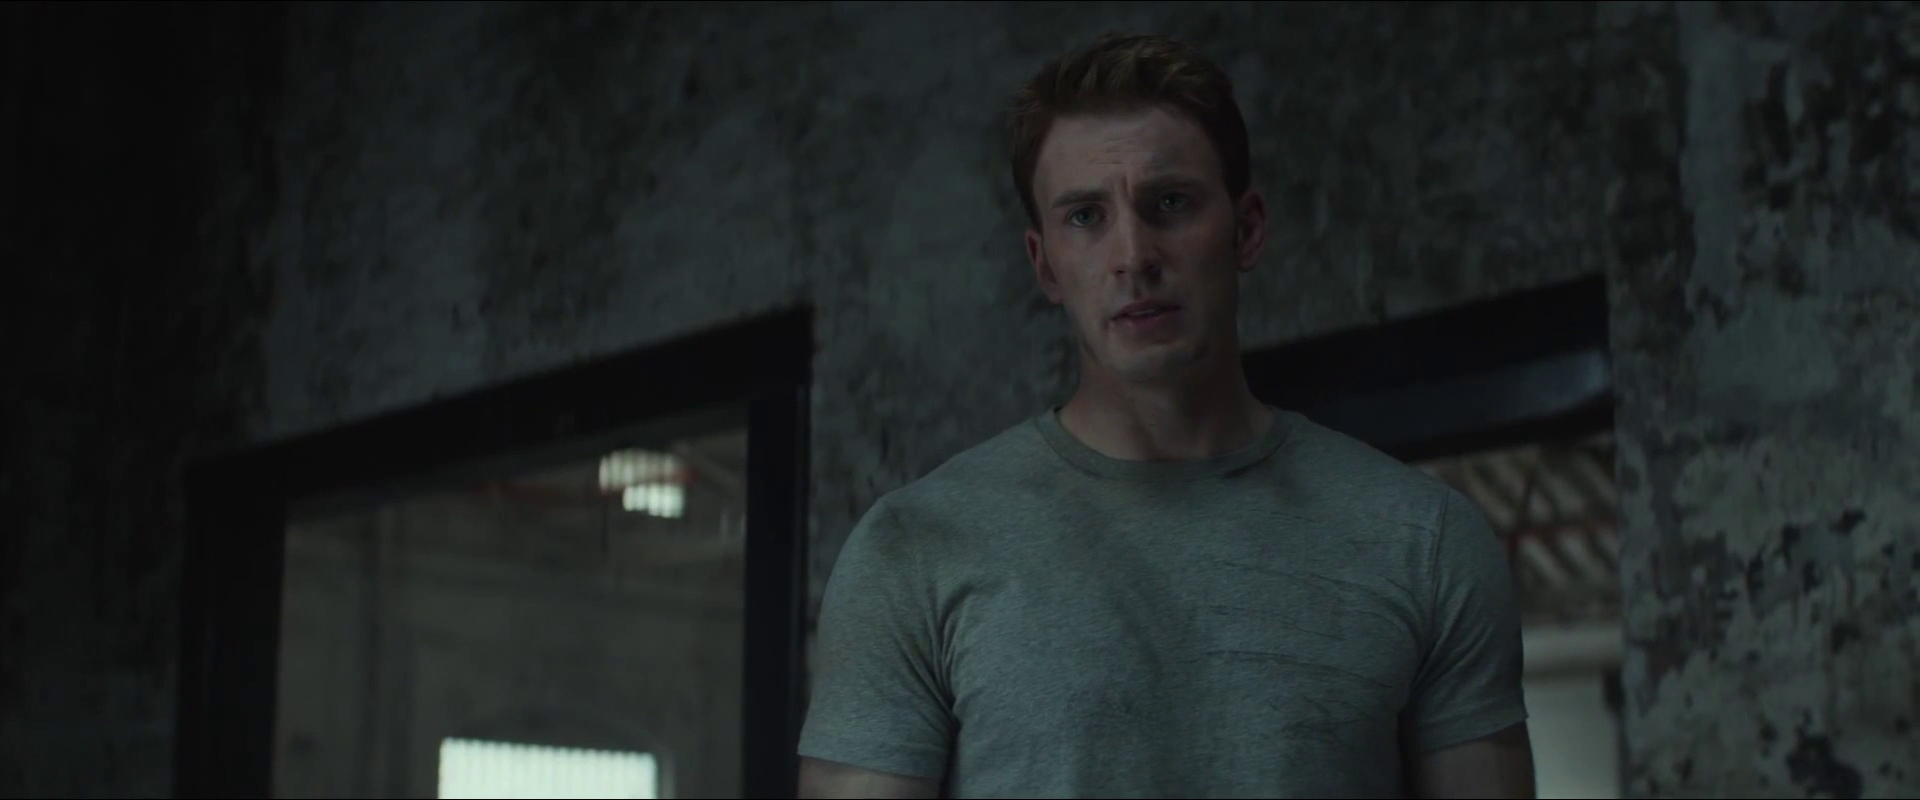 Captain America : Civil War - Page 2 991902CaptainAmericaCivilWarTrailerWorldpremiereScreens02